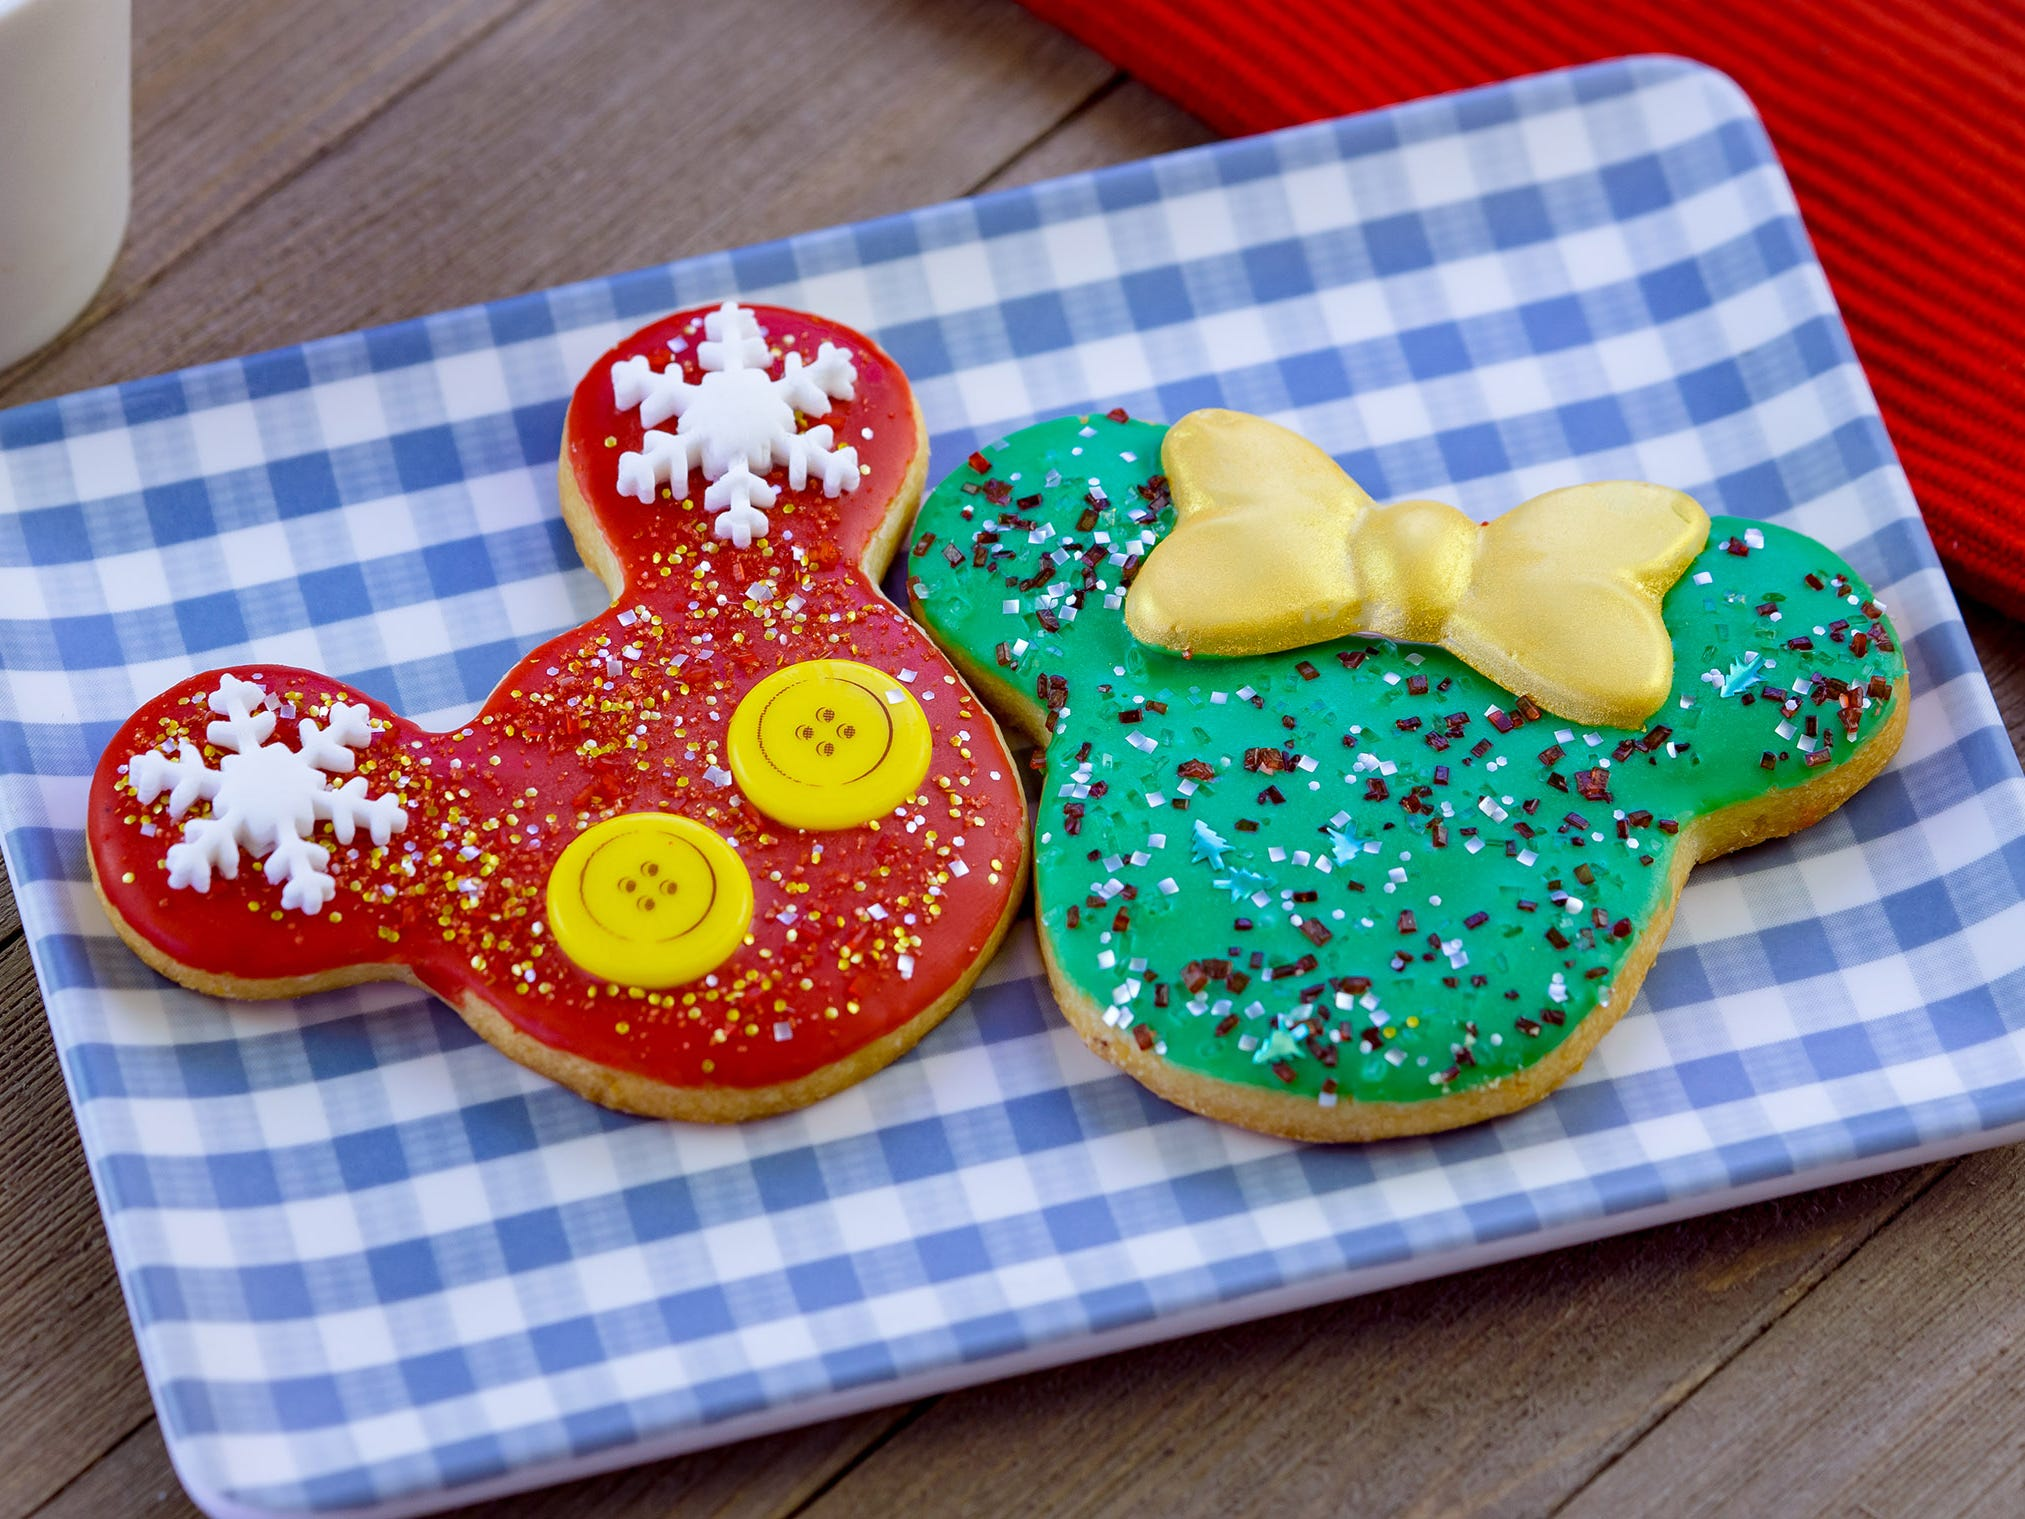 Holiday Mickey and Minnie cookies can be found at the Holiday Duets marketplace during Disney Festival of Holidays at Disney California Adventure Park. The festival runs Nov. 9 through Jan. 8. Guests can stroll through the Festive Foods Marketplace and enjoy a variety of holiday comfort dishes that span cultures and family traditions.